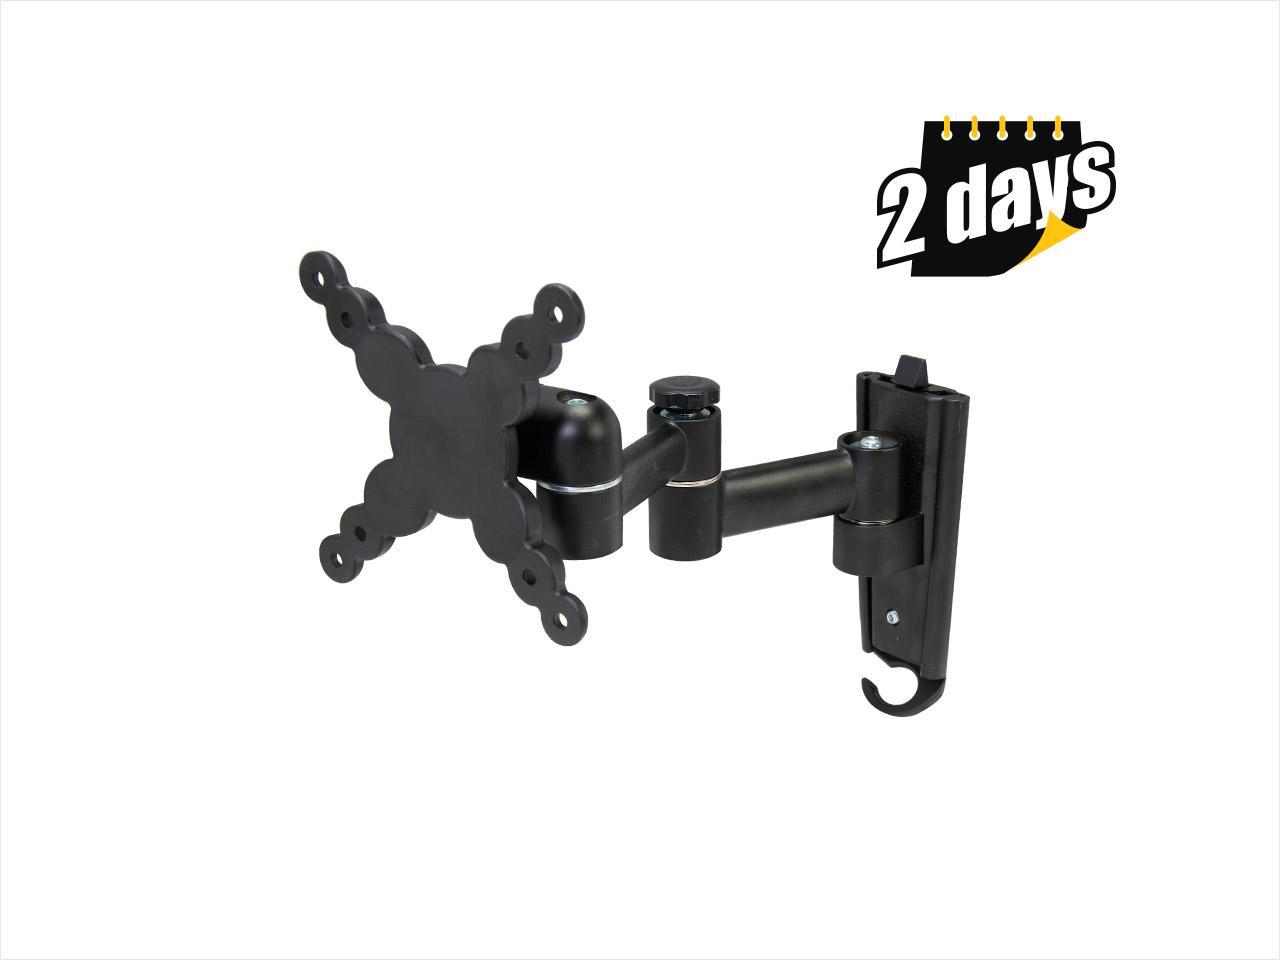 """Rosewill RMS-MA2740 - 13"""" - 24"""" LCD LED TV Articulating Tilt & Swivel Wall Mount - Max. Load 40 lbs., VESA Up to 100x100mm, Black, Compatible with Samsung, Vizio, Sony, Panasonic, LG and Toshiba TV"""